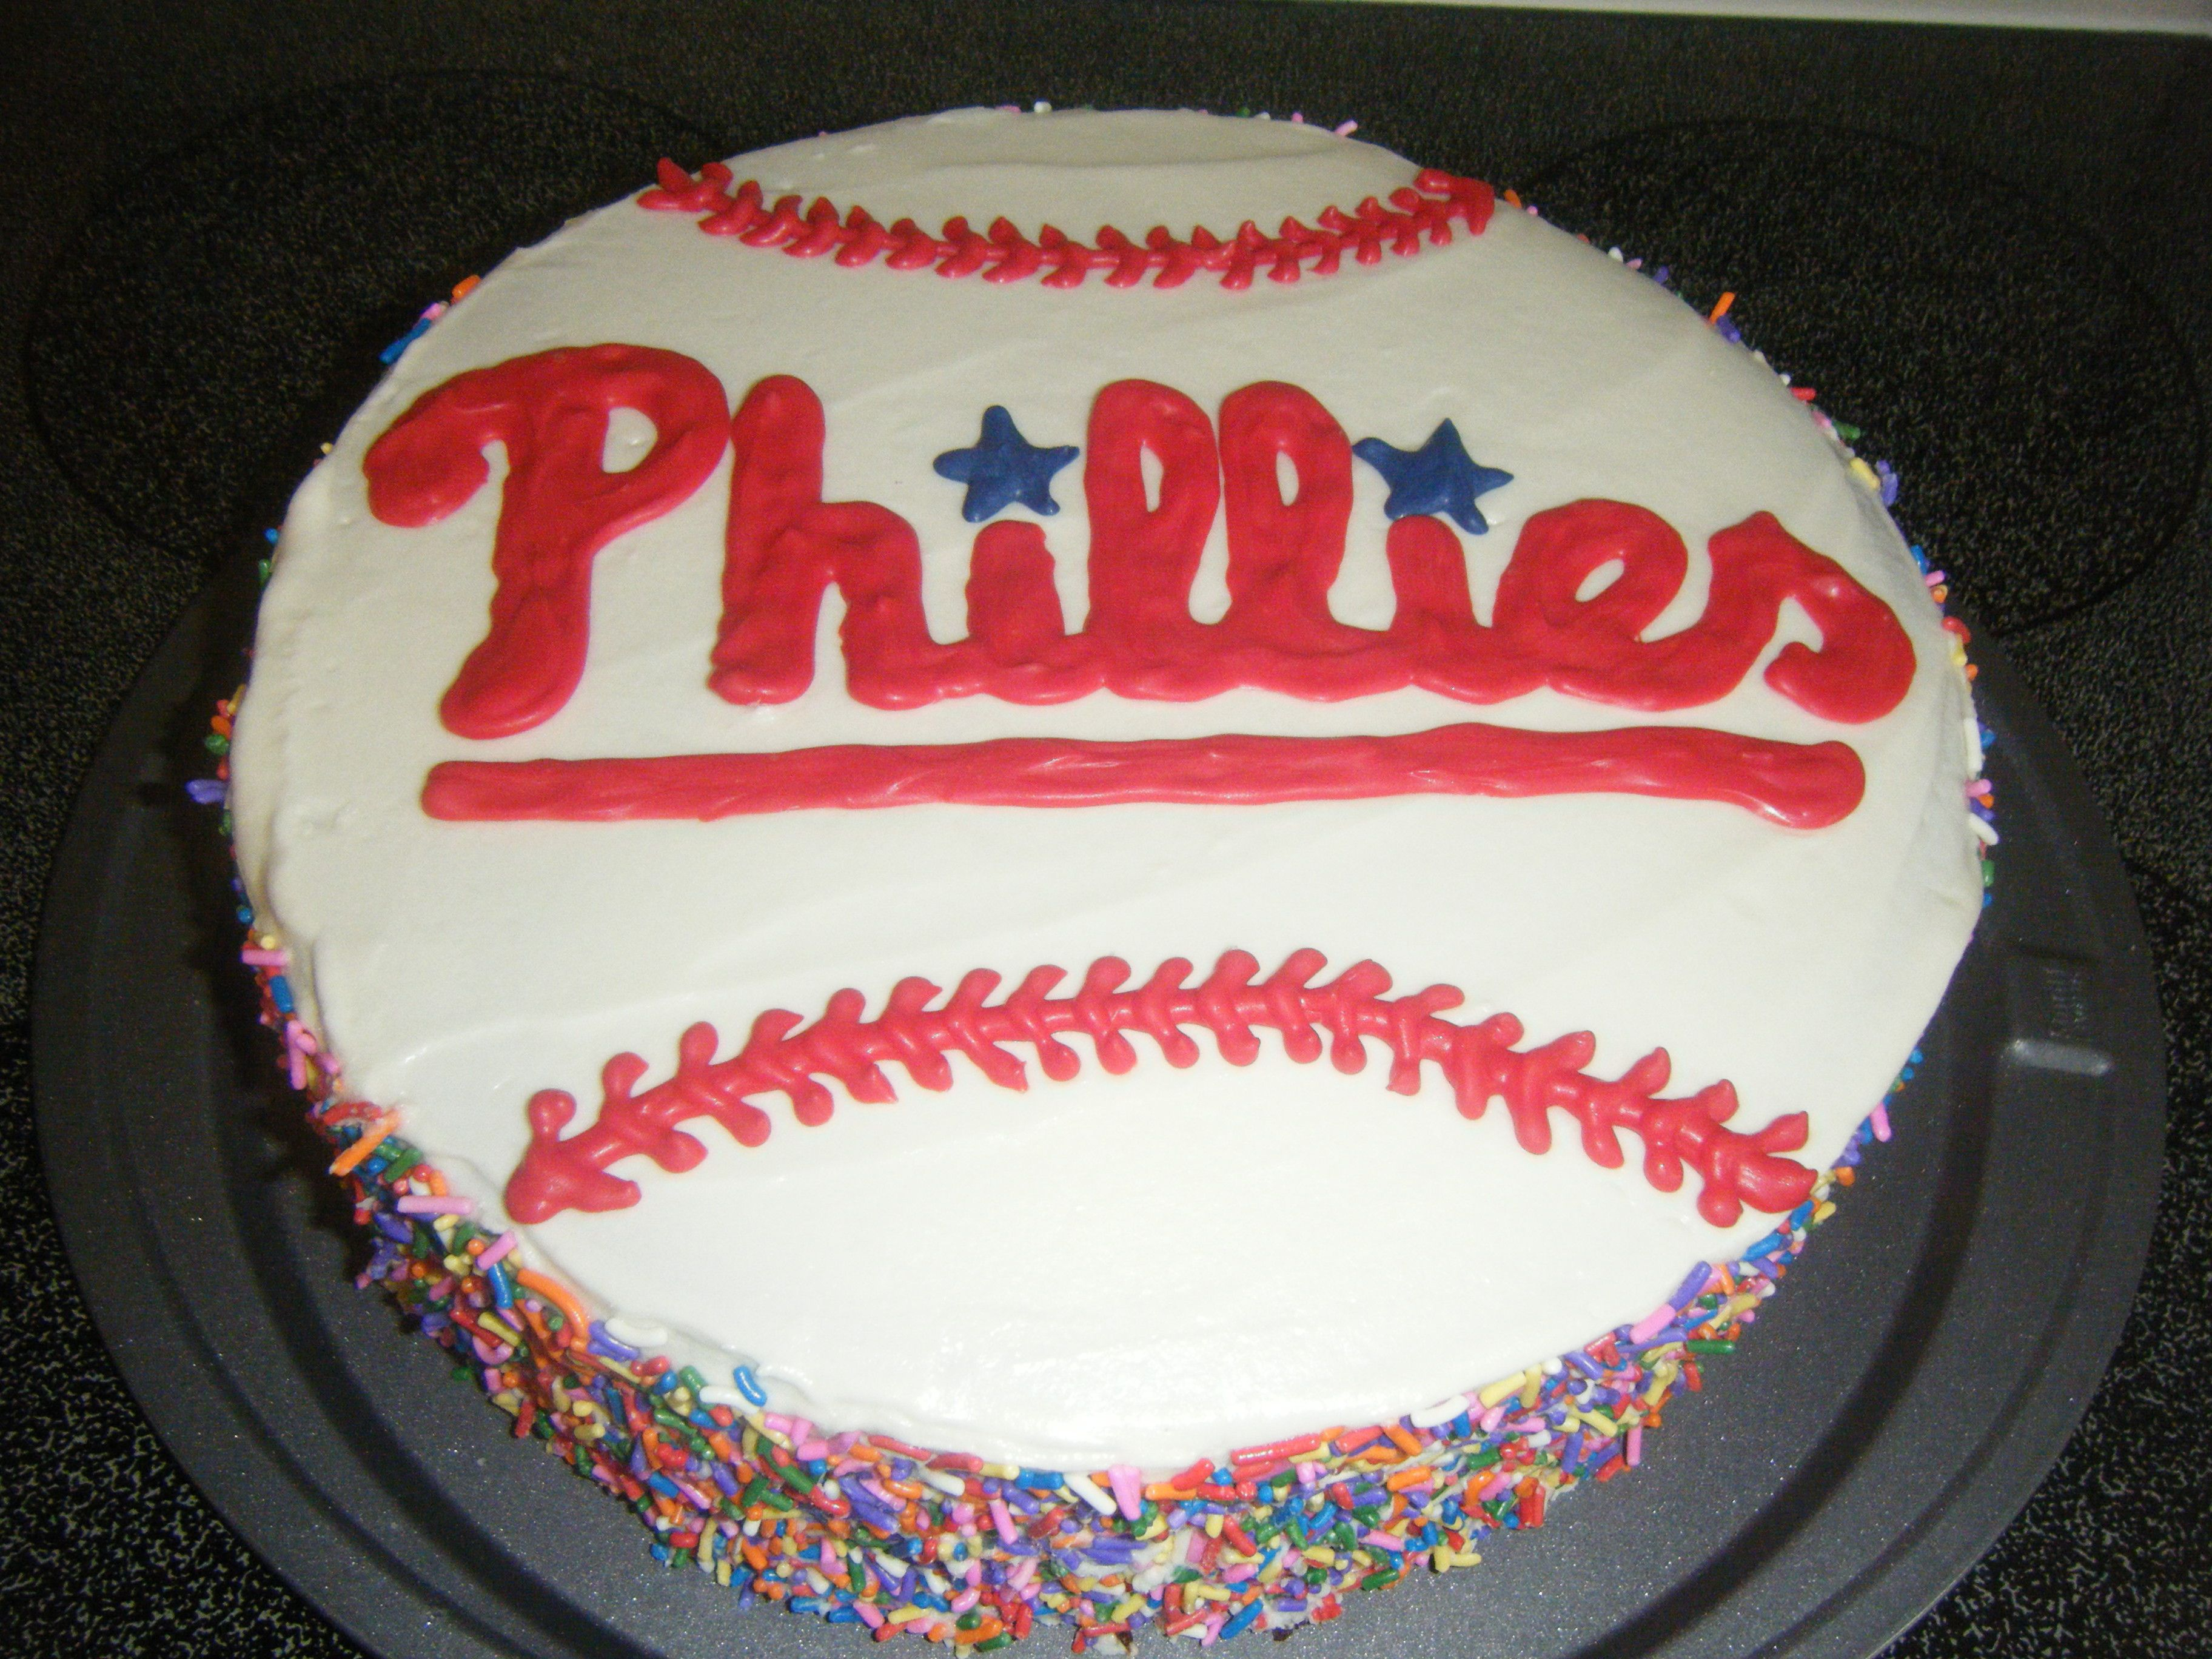 Surprising Phillies Cake With Images Cupcake Cakes Baseball Theme Funny Birthday Cards Online Necthendildamsfinfo